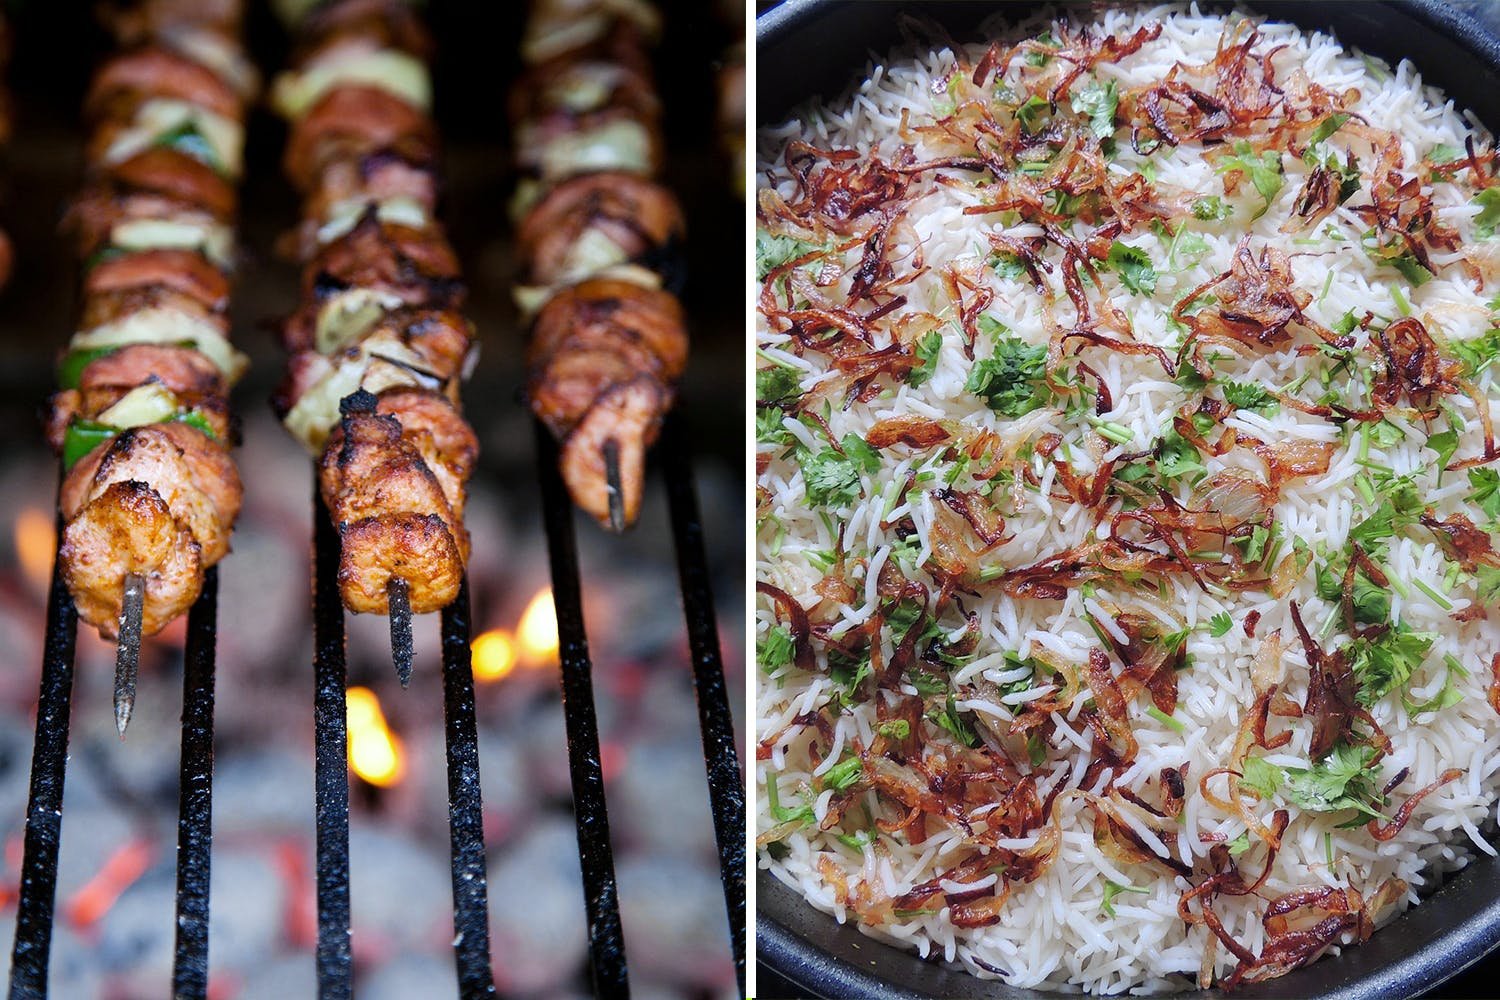 Dish,Food,Cuisine,Shashlik,Ingredient,Souvlaki,Skewer,Shish taouk,Yakitori,Kebab